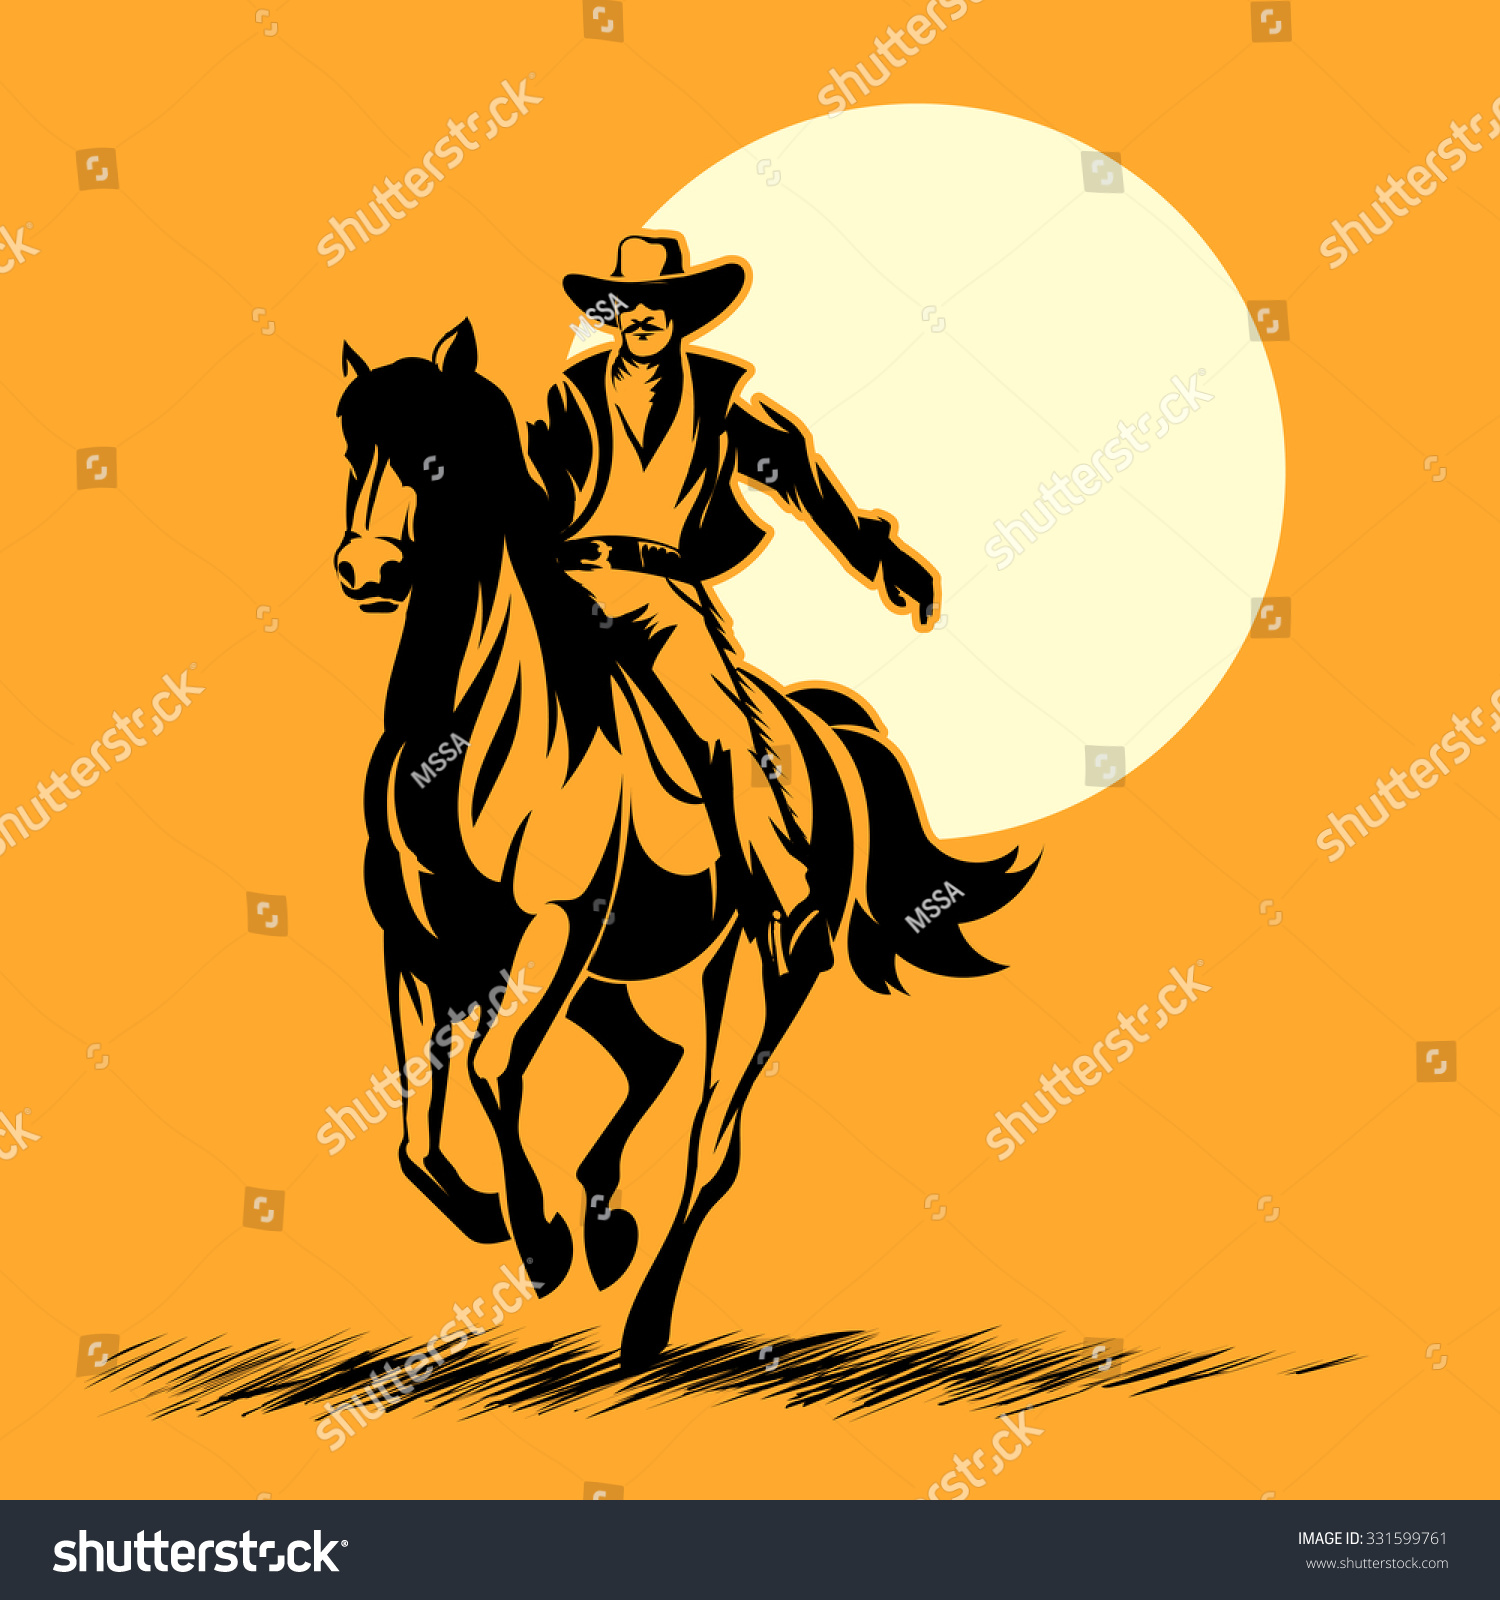 1500x1600 Wild West Hero, Cowboy Silhouette Riding Horse